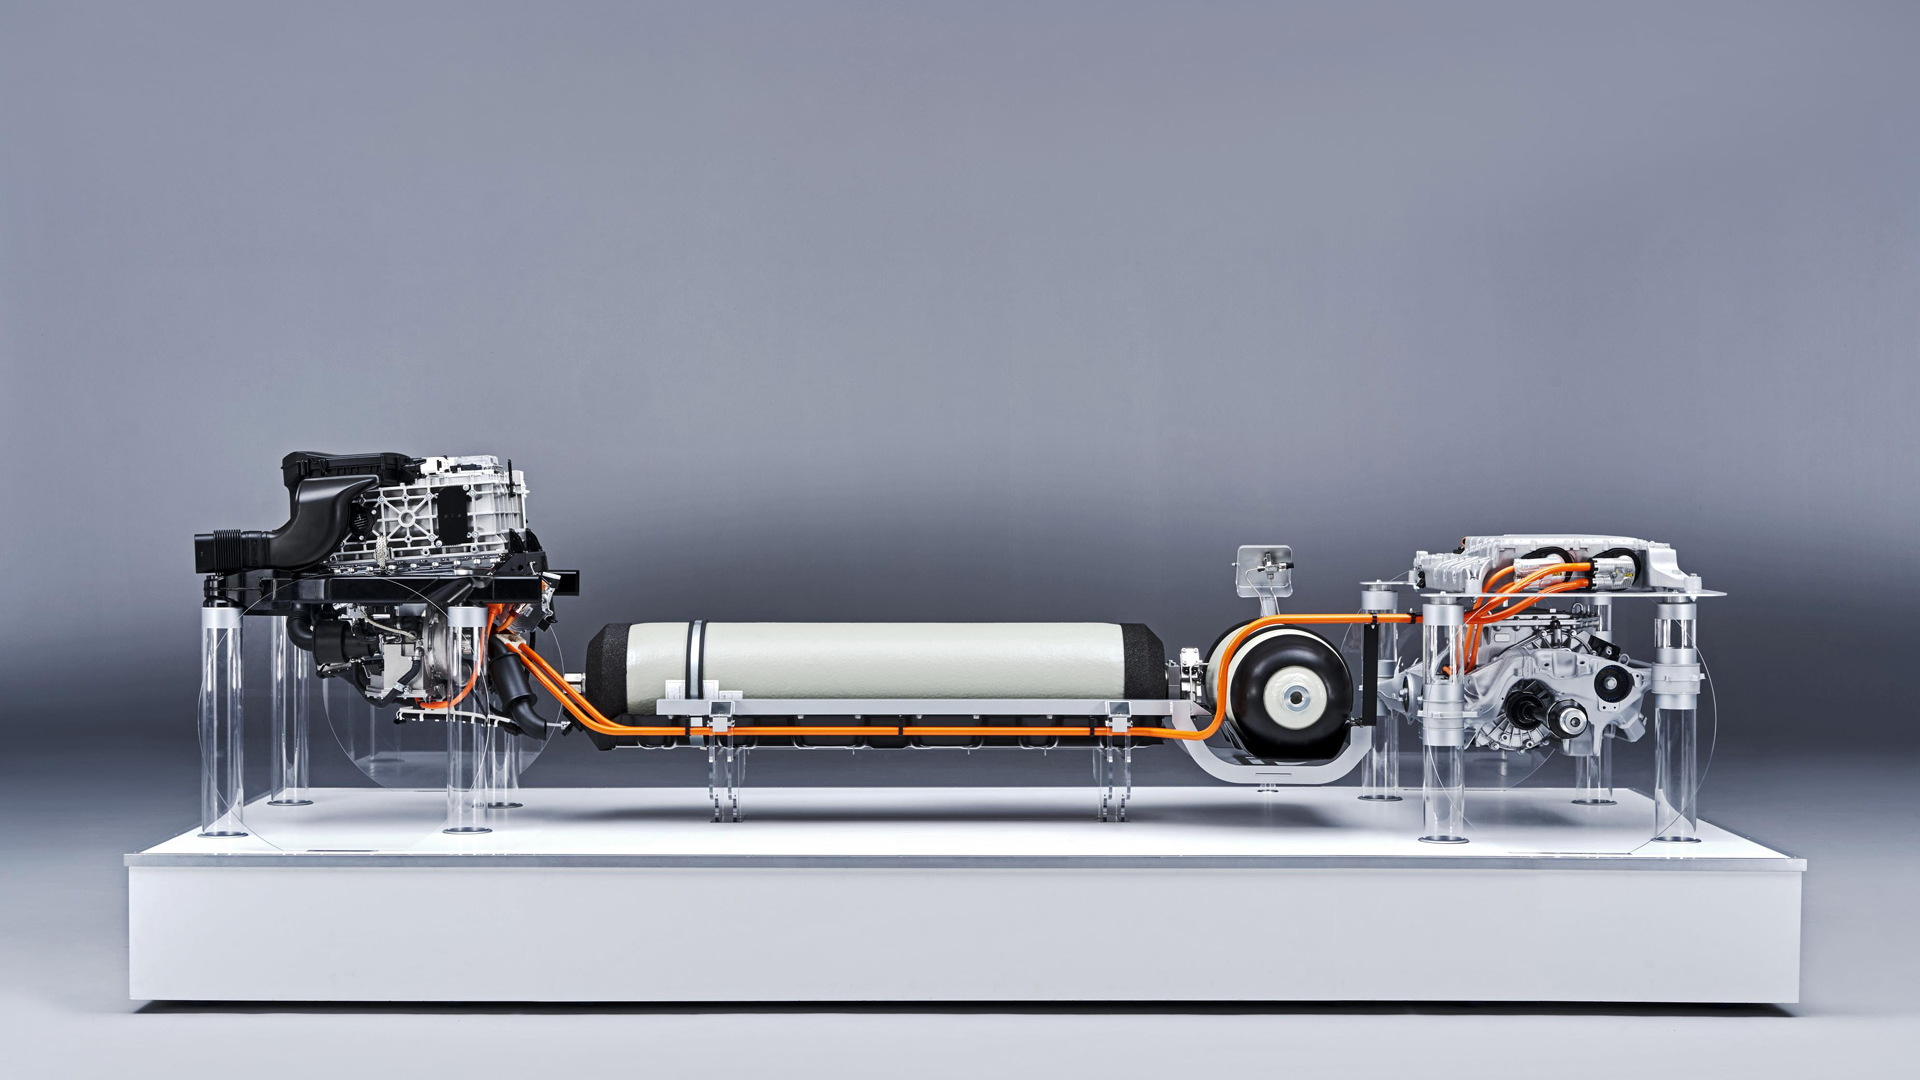 BMW hydrogen-electric powertrain entering production in 2022